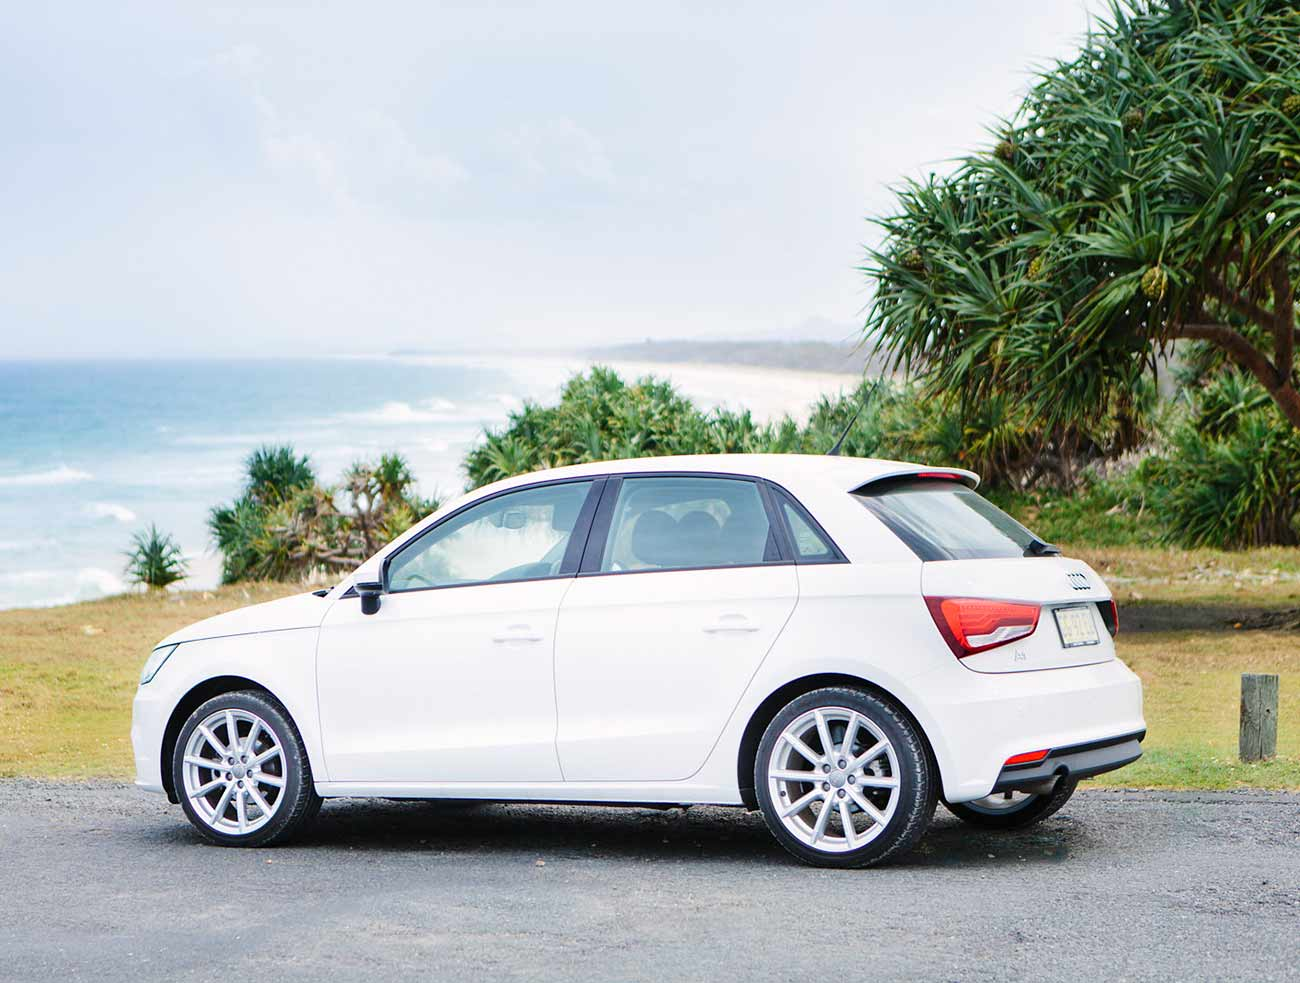 Hire at Audi A1 to explore the coast